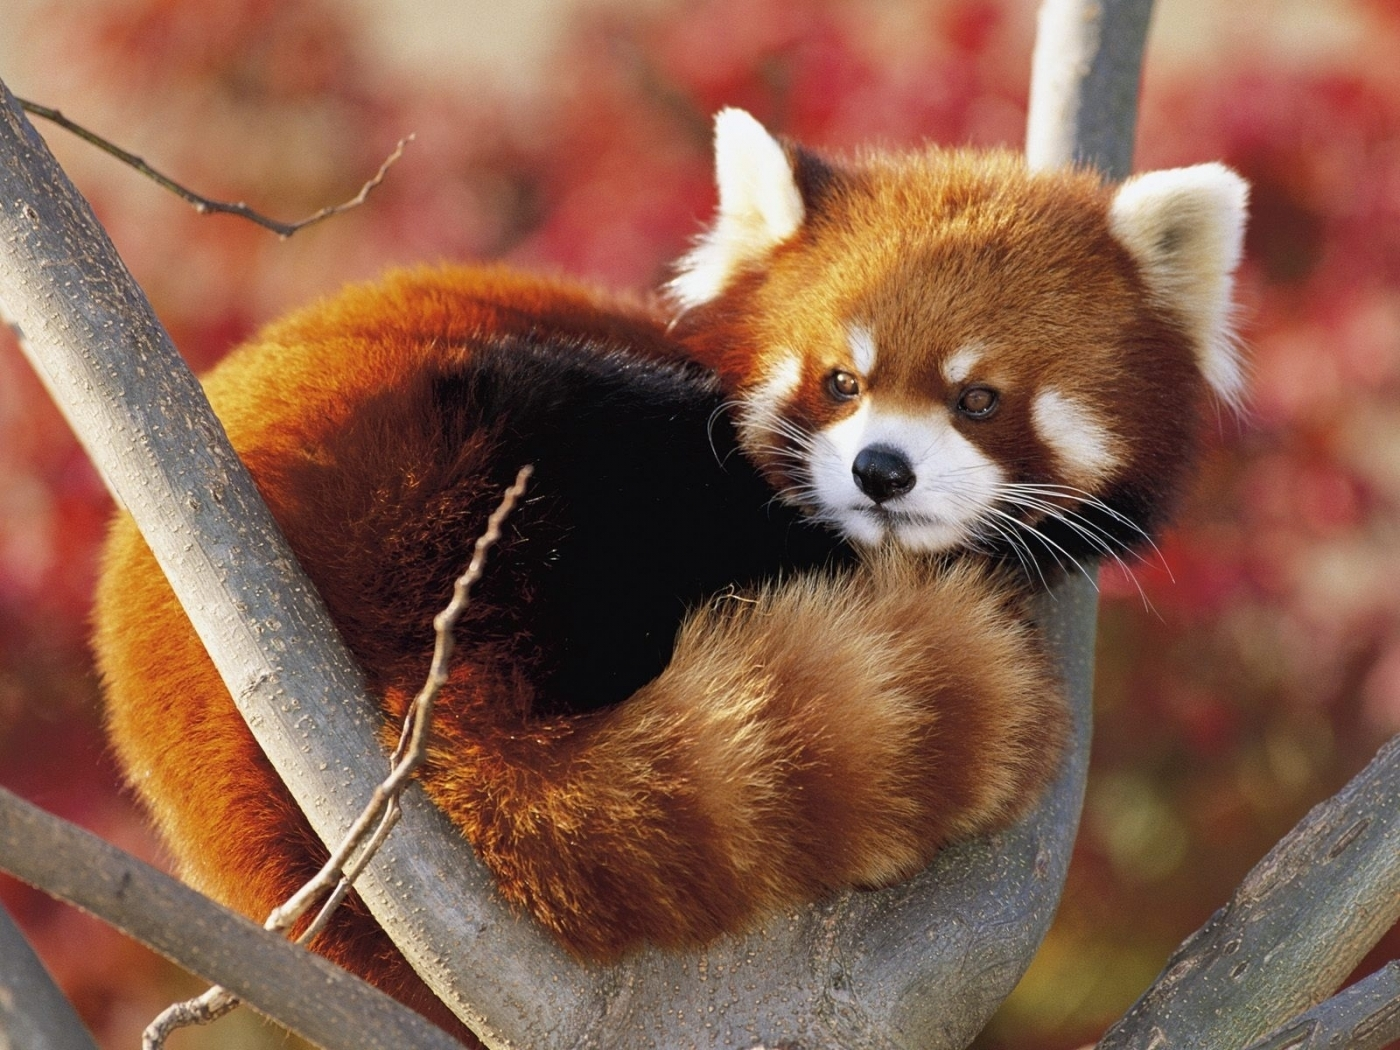 23667 download wallpaper Animals, Pandas screensavers and pictures for free